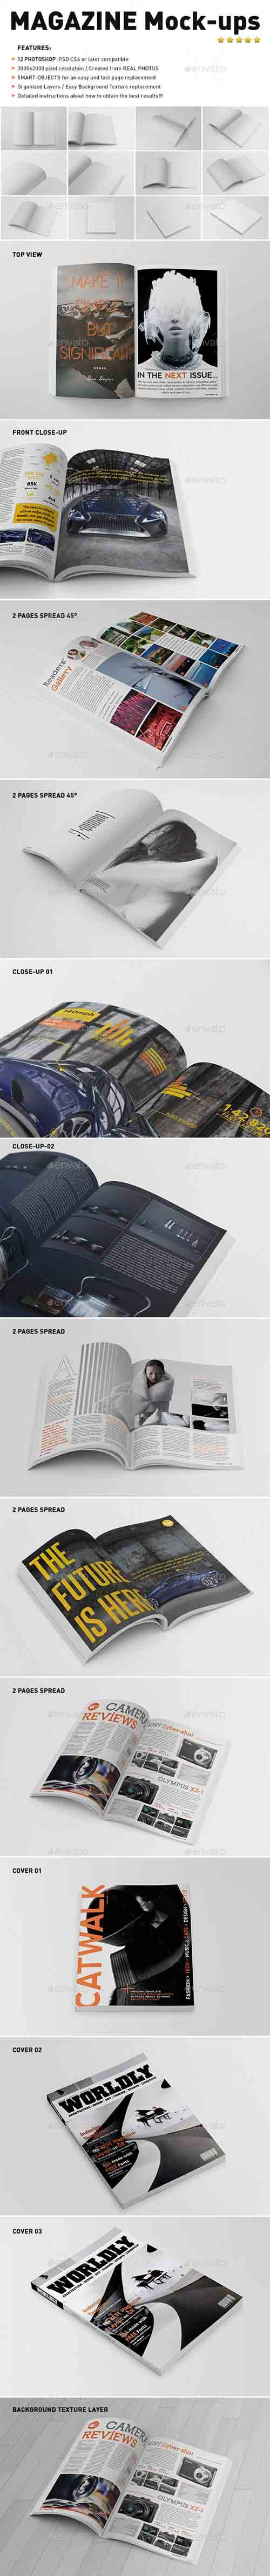 GraphicRiver - Photorealistic Magazine Mock-Ups